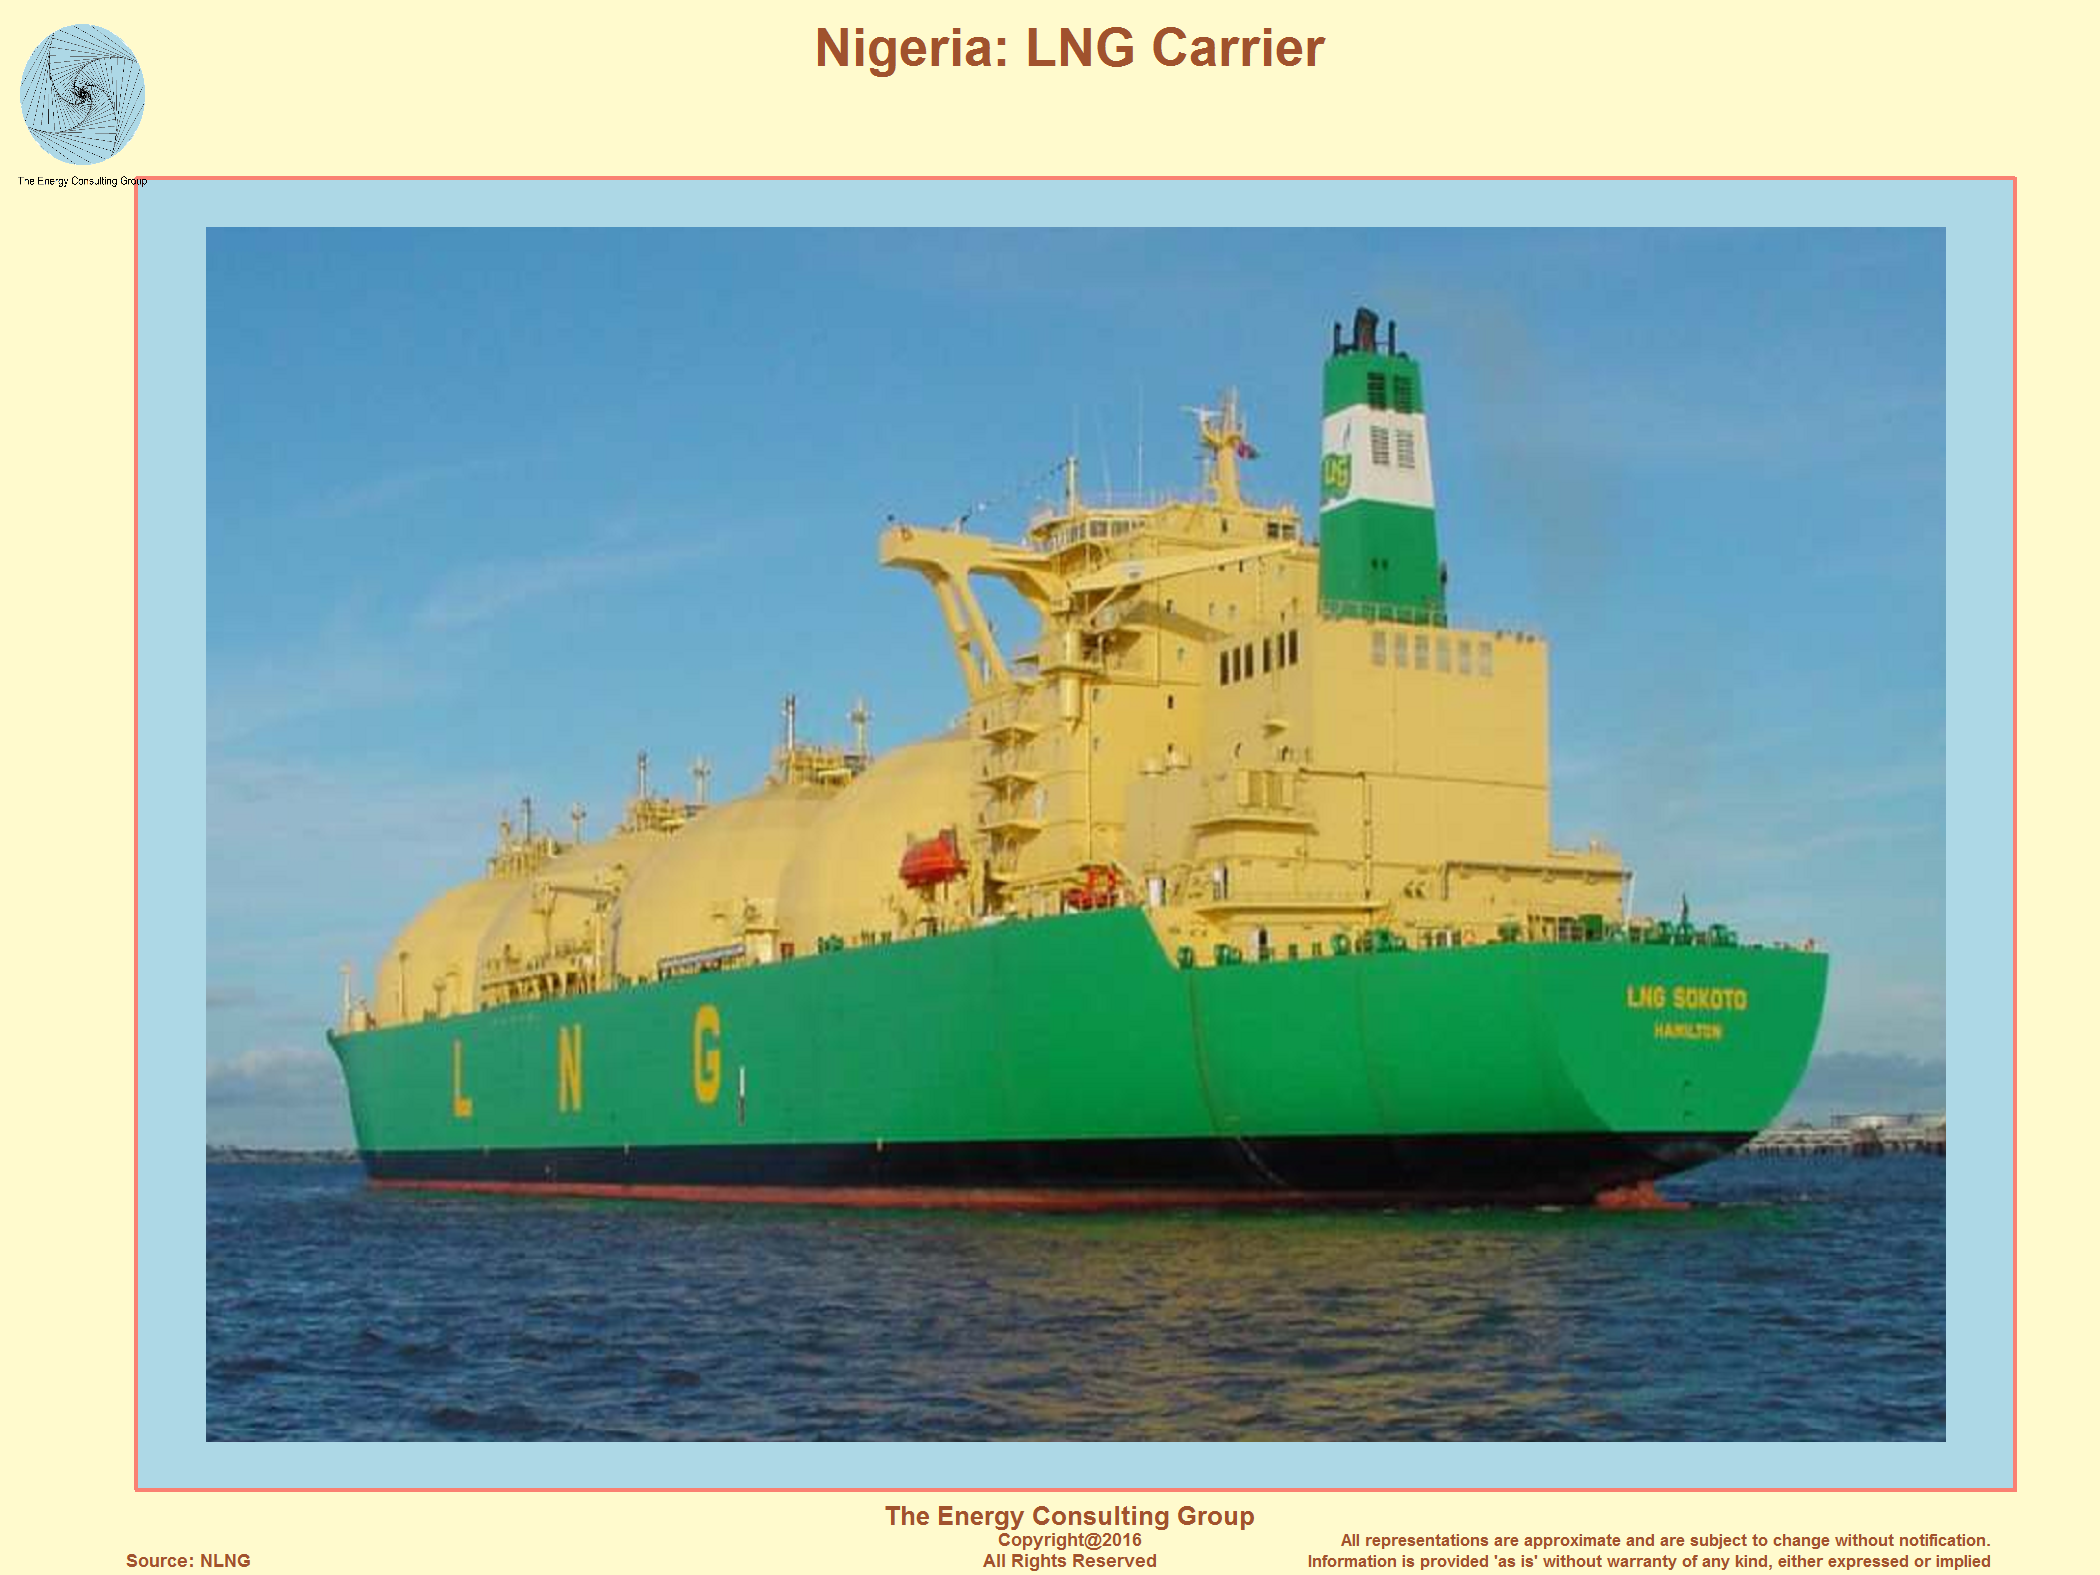 LNG Carrier, Nigeria